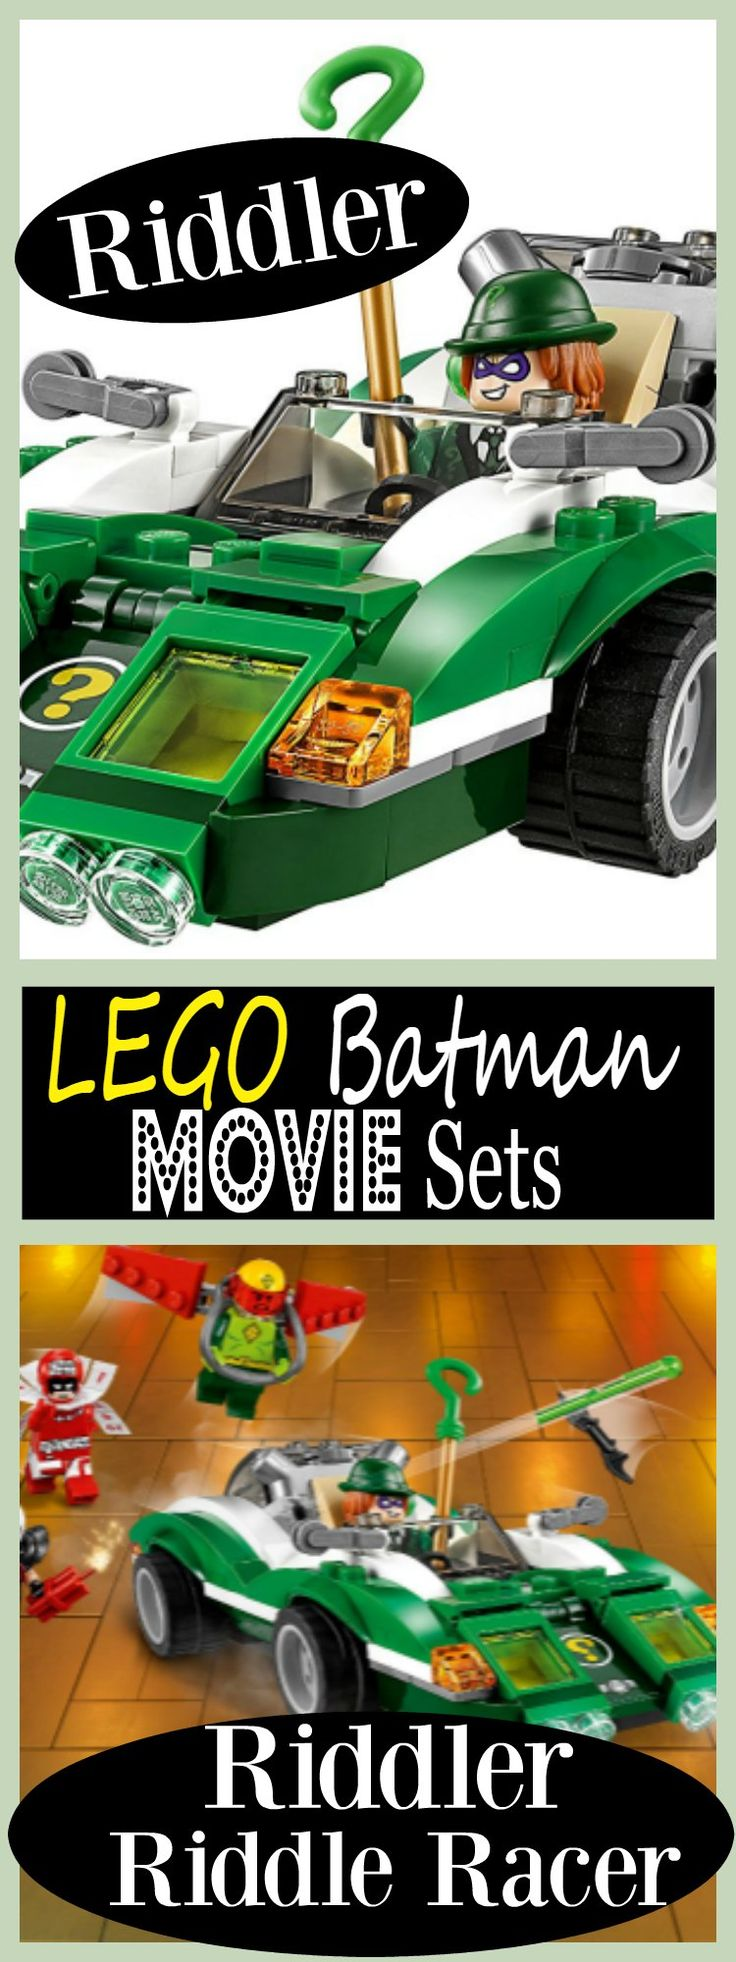 Lego Batman Movie Sets 2017 - The Riddler is at it again. Check out his new Riddler Riddle Racer Car. Pretty cool!